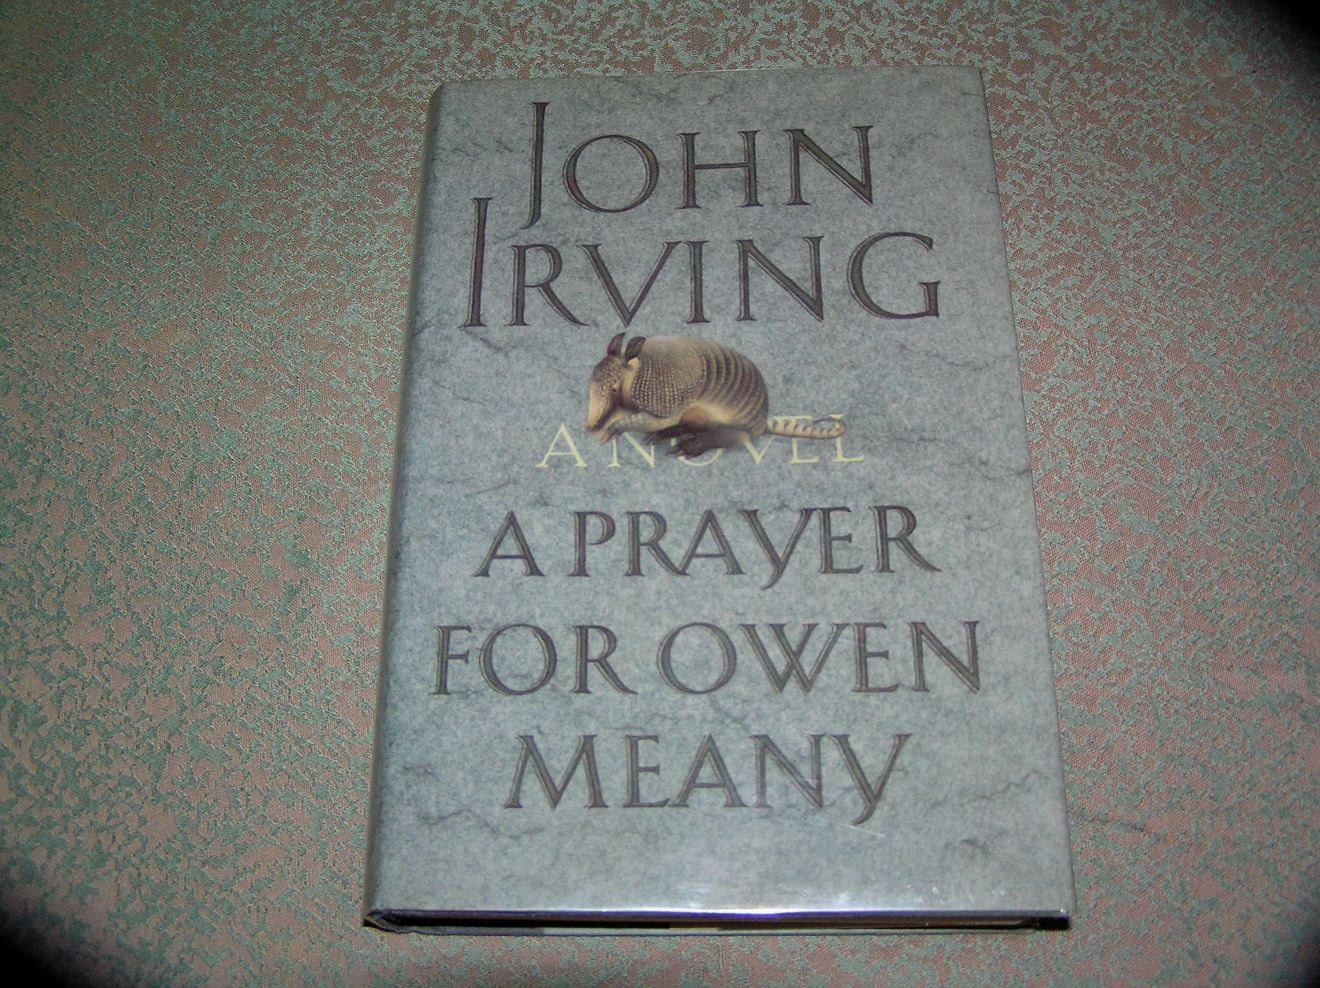 a prayer for owen meany A prayer for owen meany john irving table of contents the foul ball the armadillo the angel little lord jesus the ghost of the future the voice the dream the finger.